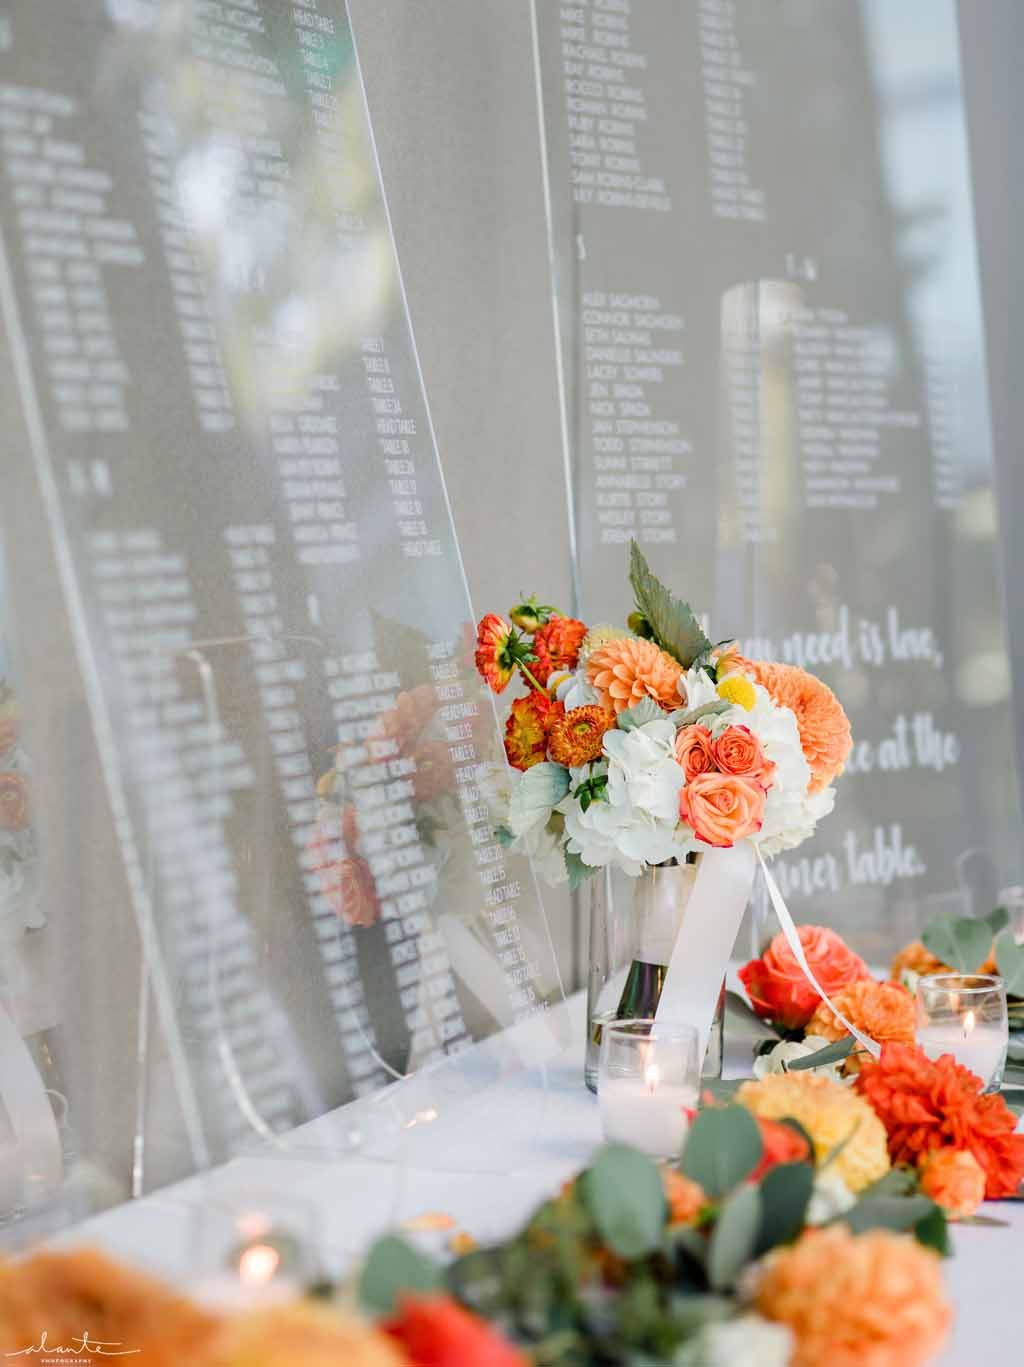 Seating chart with orange and grey flowers for a orange summer wedding at Chihuly